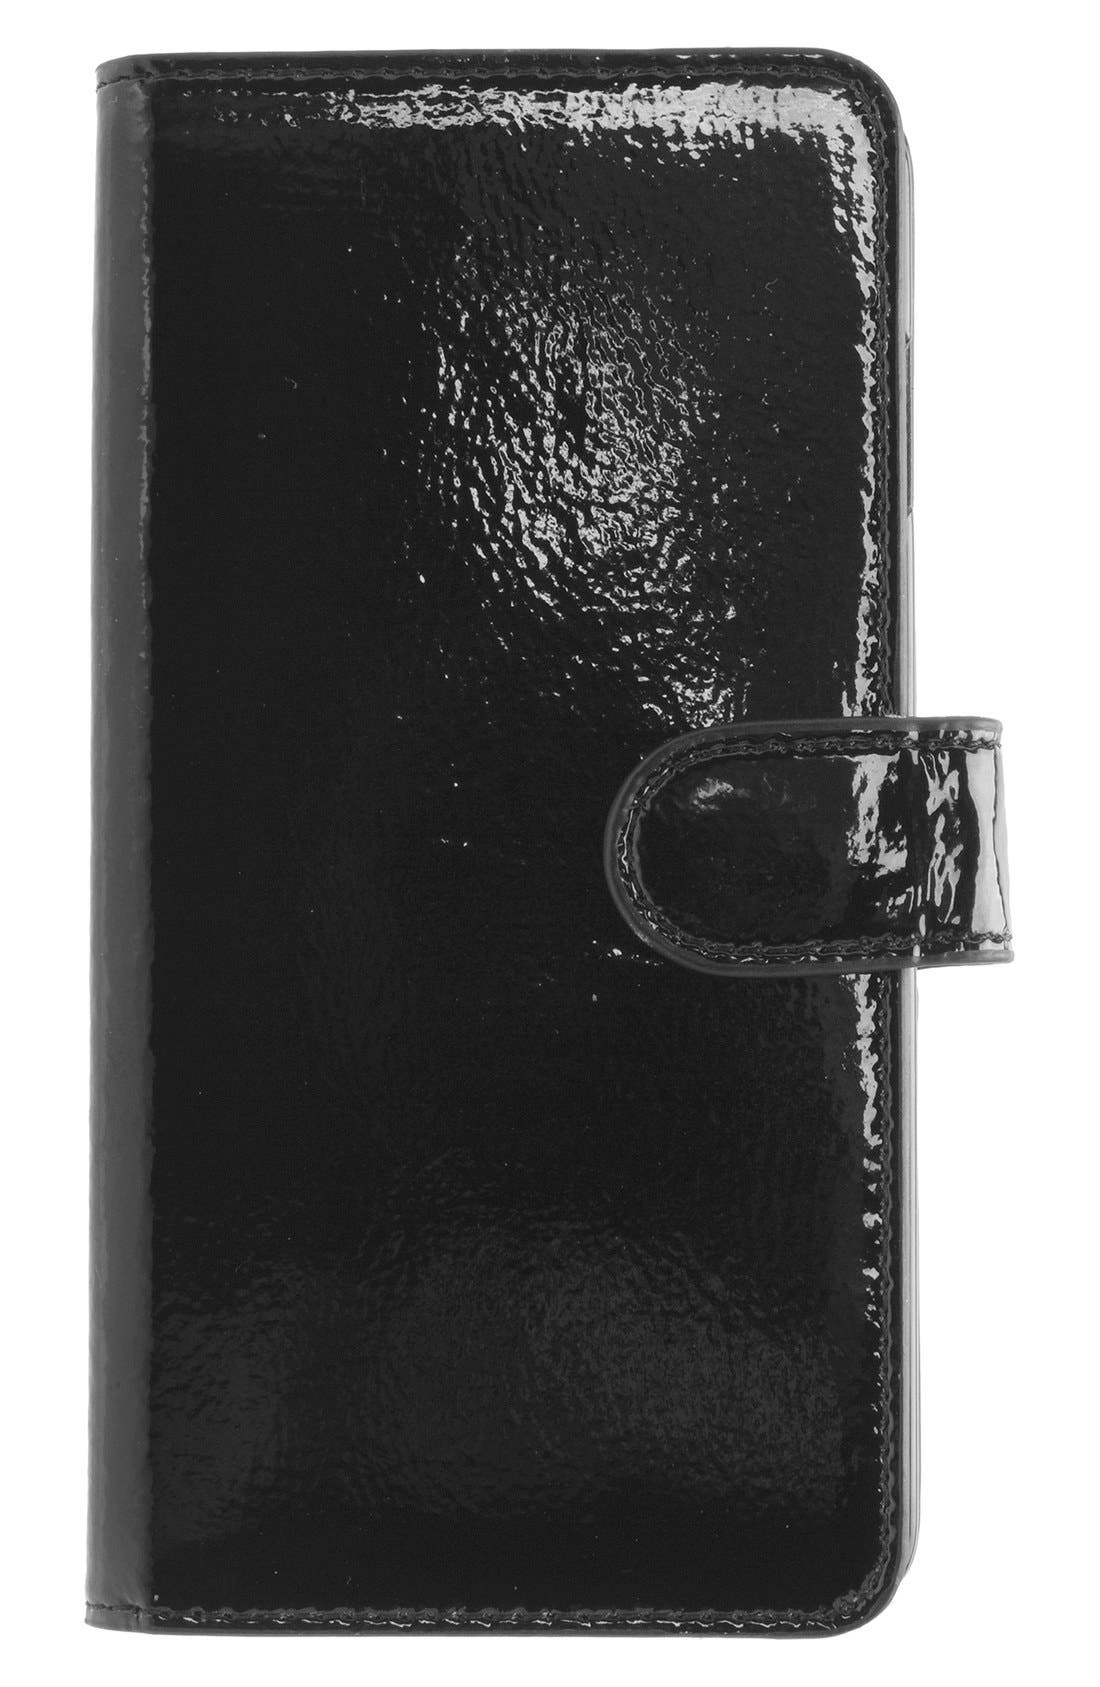 Alternate Image 1 Selected - Mobileluxe iPhone 6 Plus Wallet Case